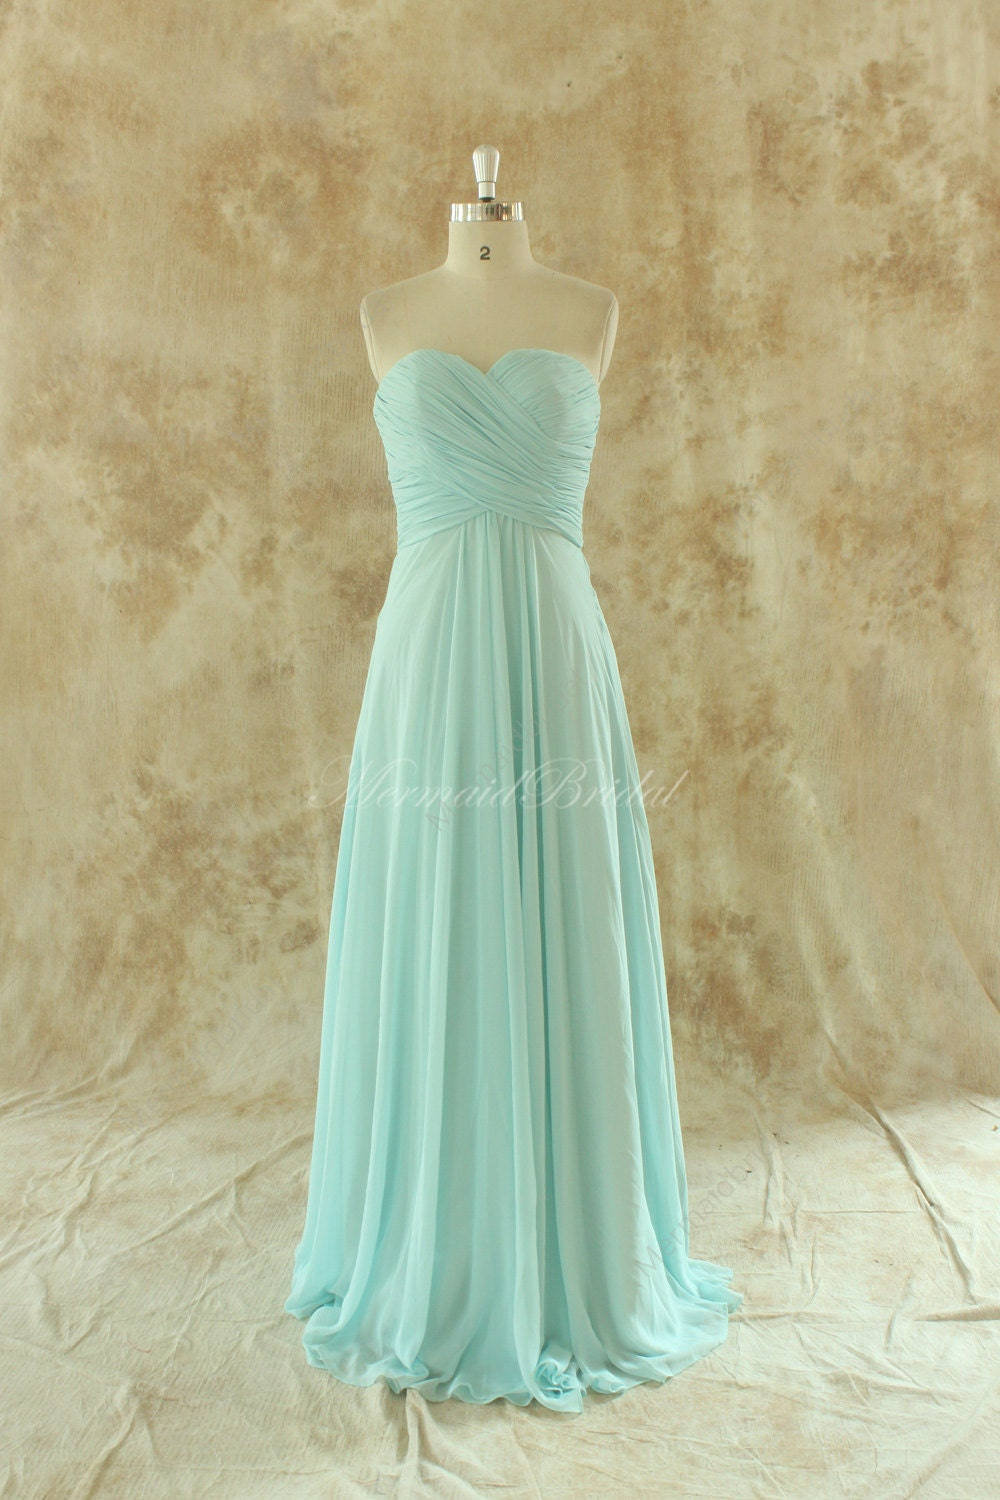 Blue Wedding Dress Simple : Simple mint blue bridesmaid dress prom gown with by mermaidbridal